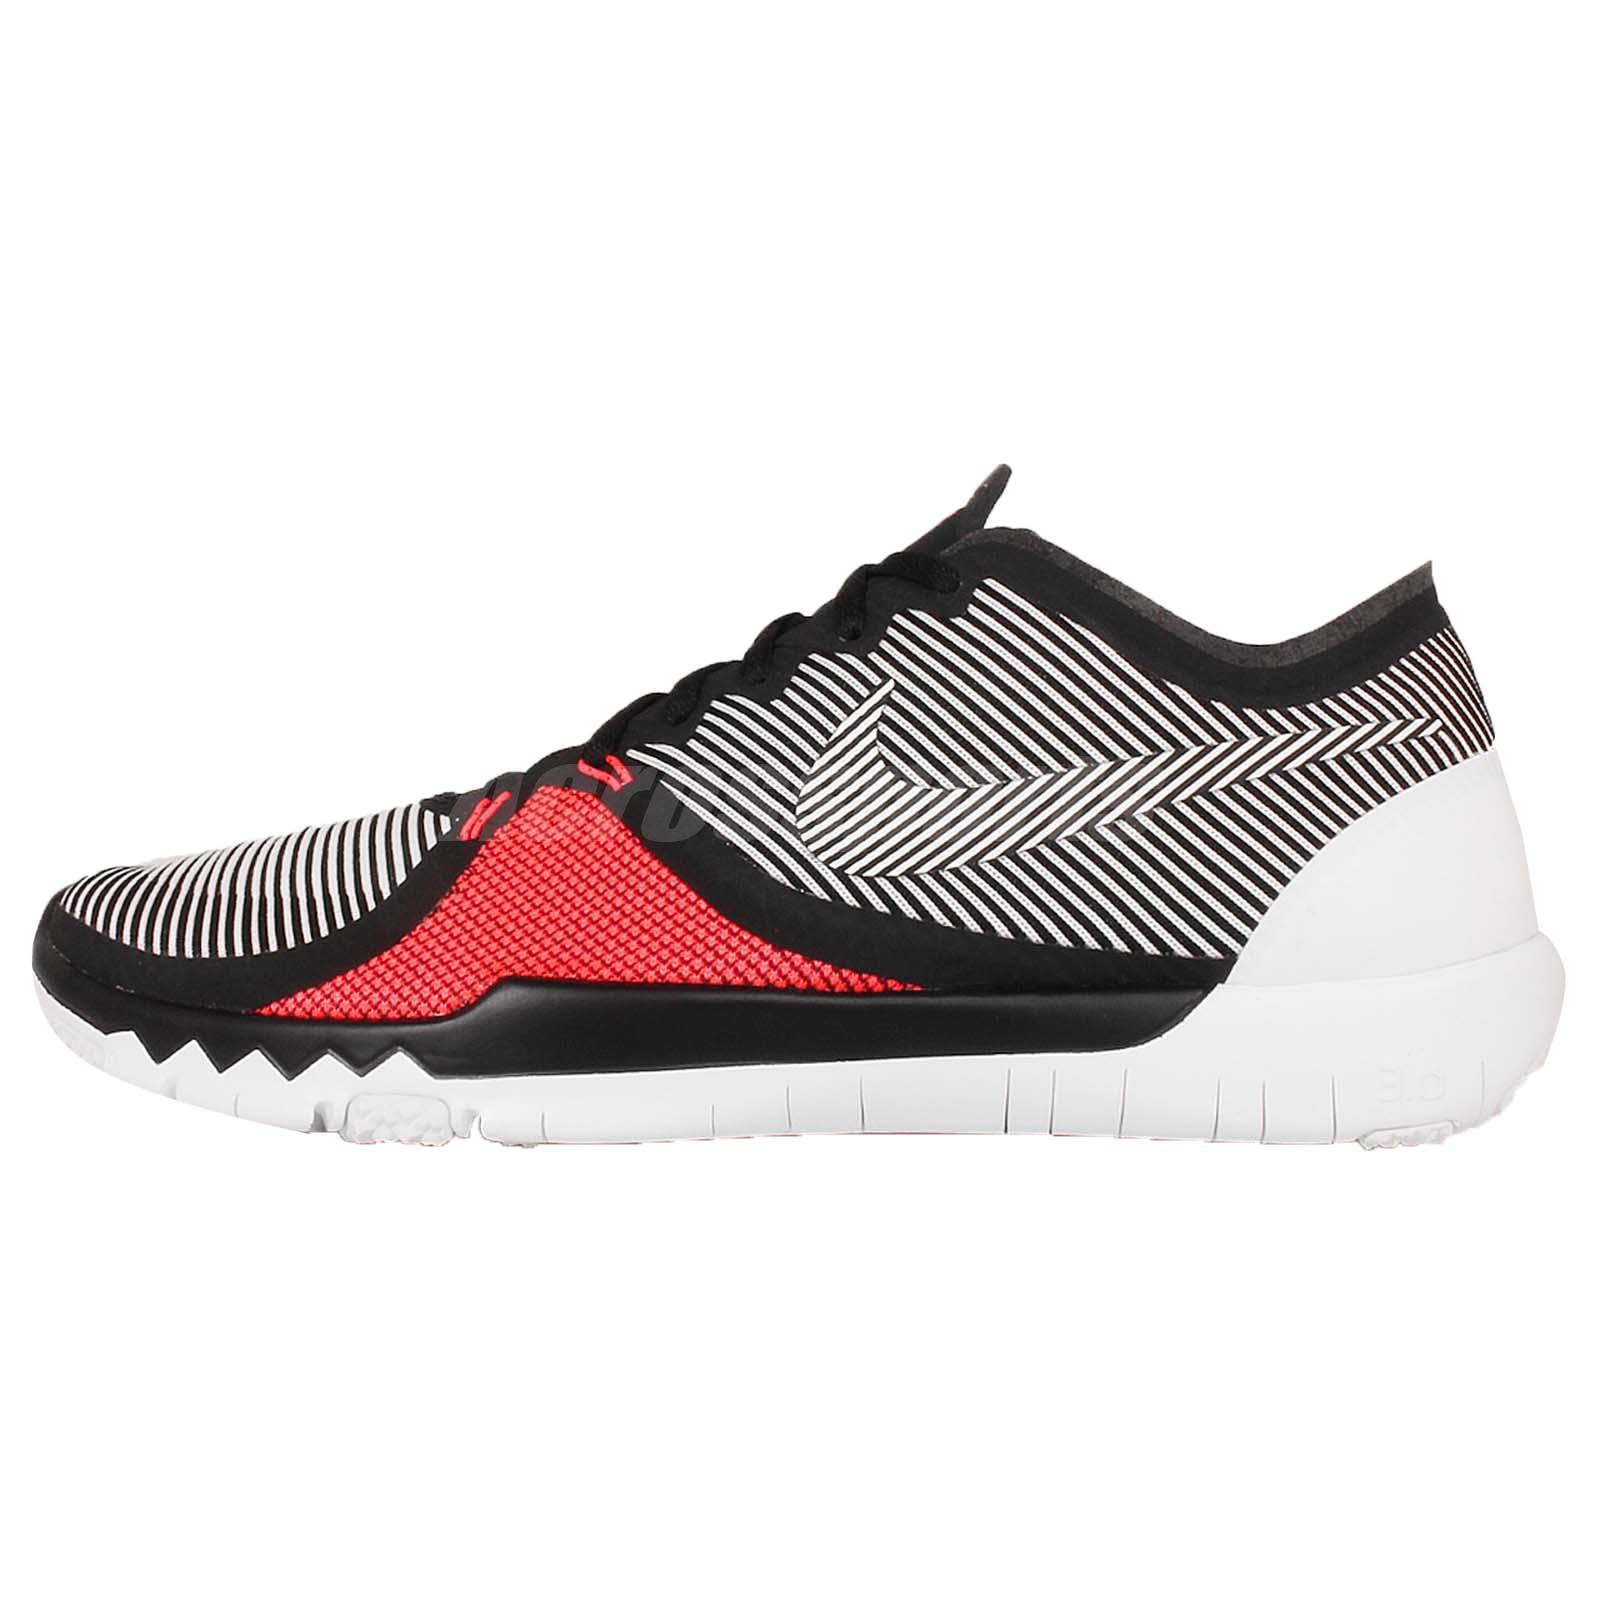 Nike Free Trainer 3.0 V4 Black Red Mens Fitness Gym Training Shoes 749361-016